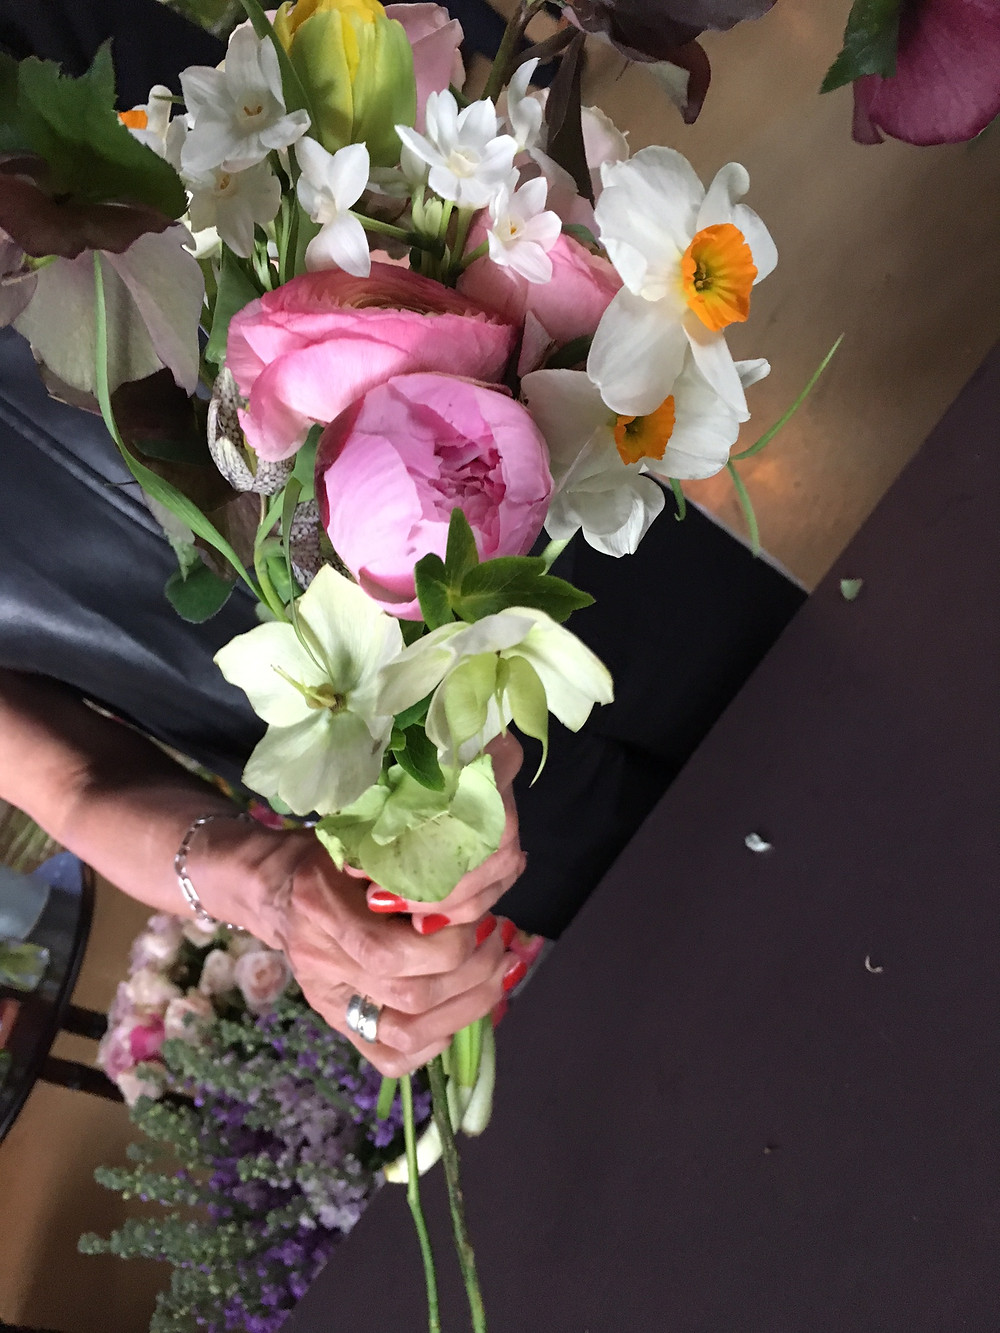 Here I am wrapping my lovely flowers, aren't they gorgeous?